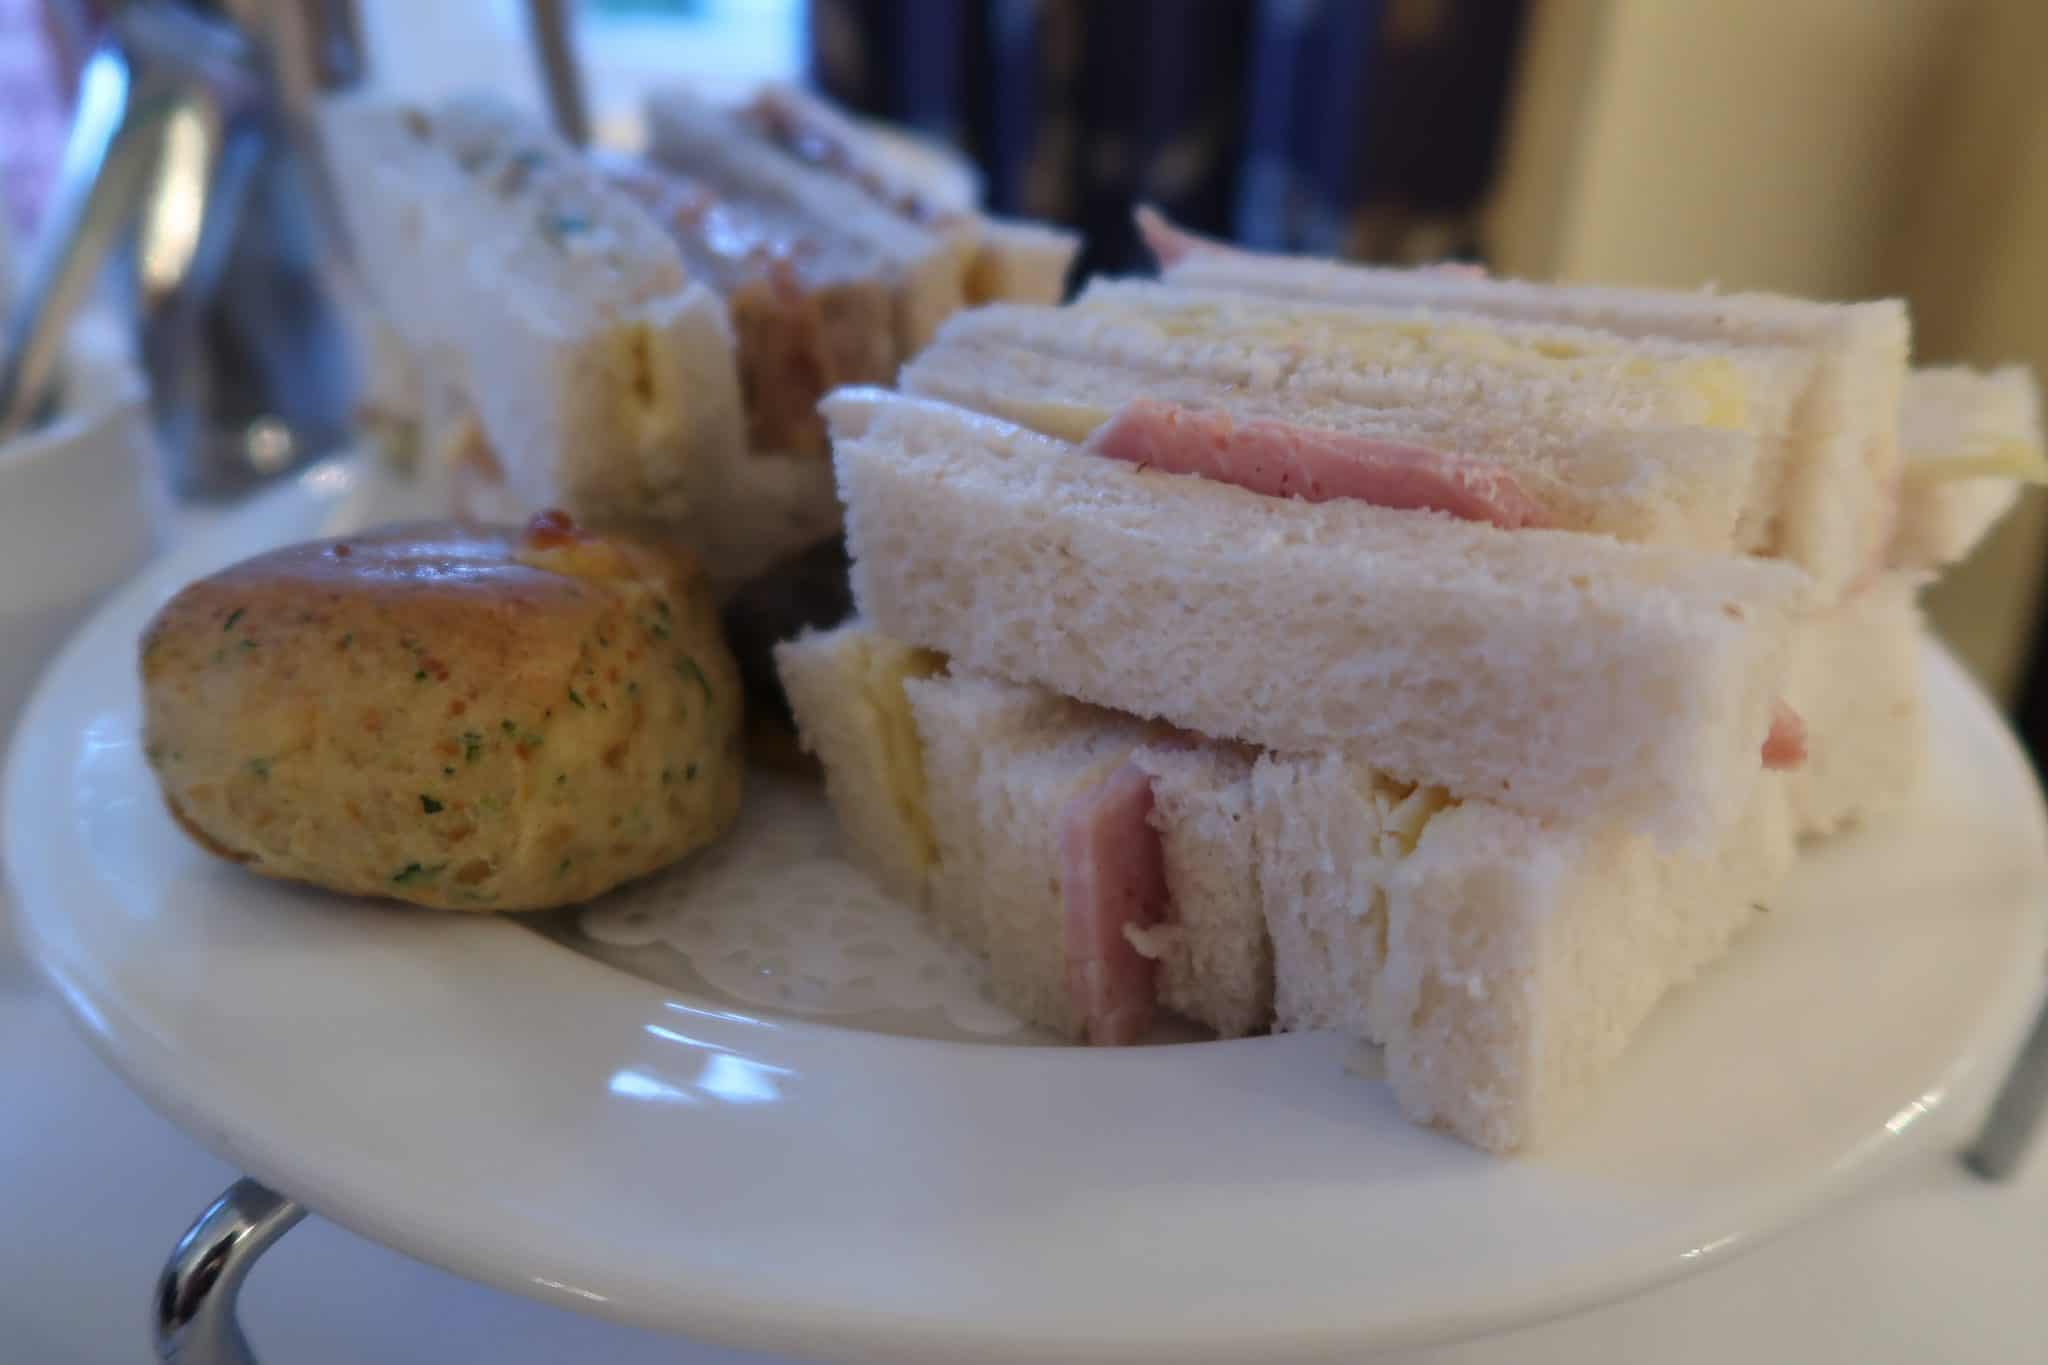 Buy A Gift: Sparkling Afternoon Tea For 2 Experience